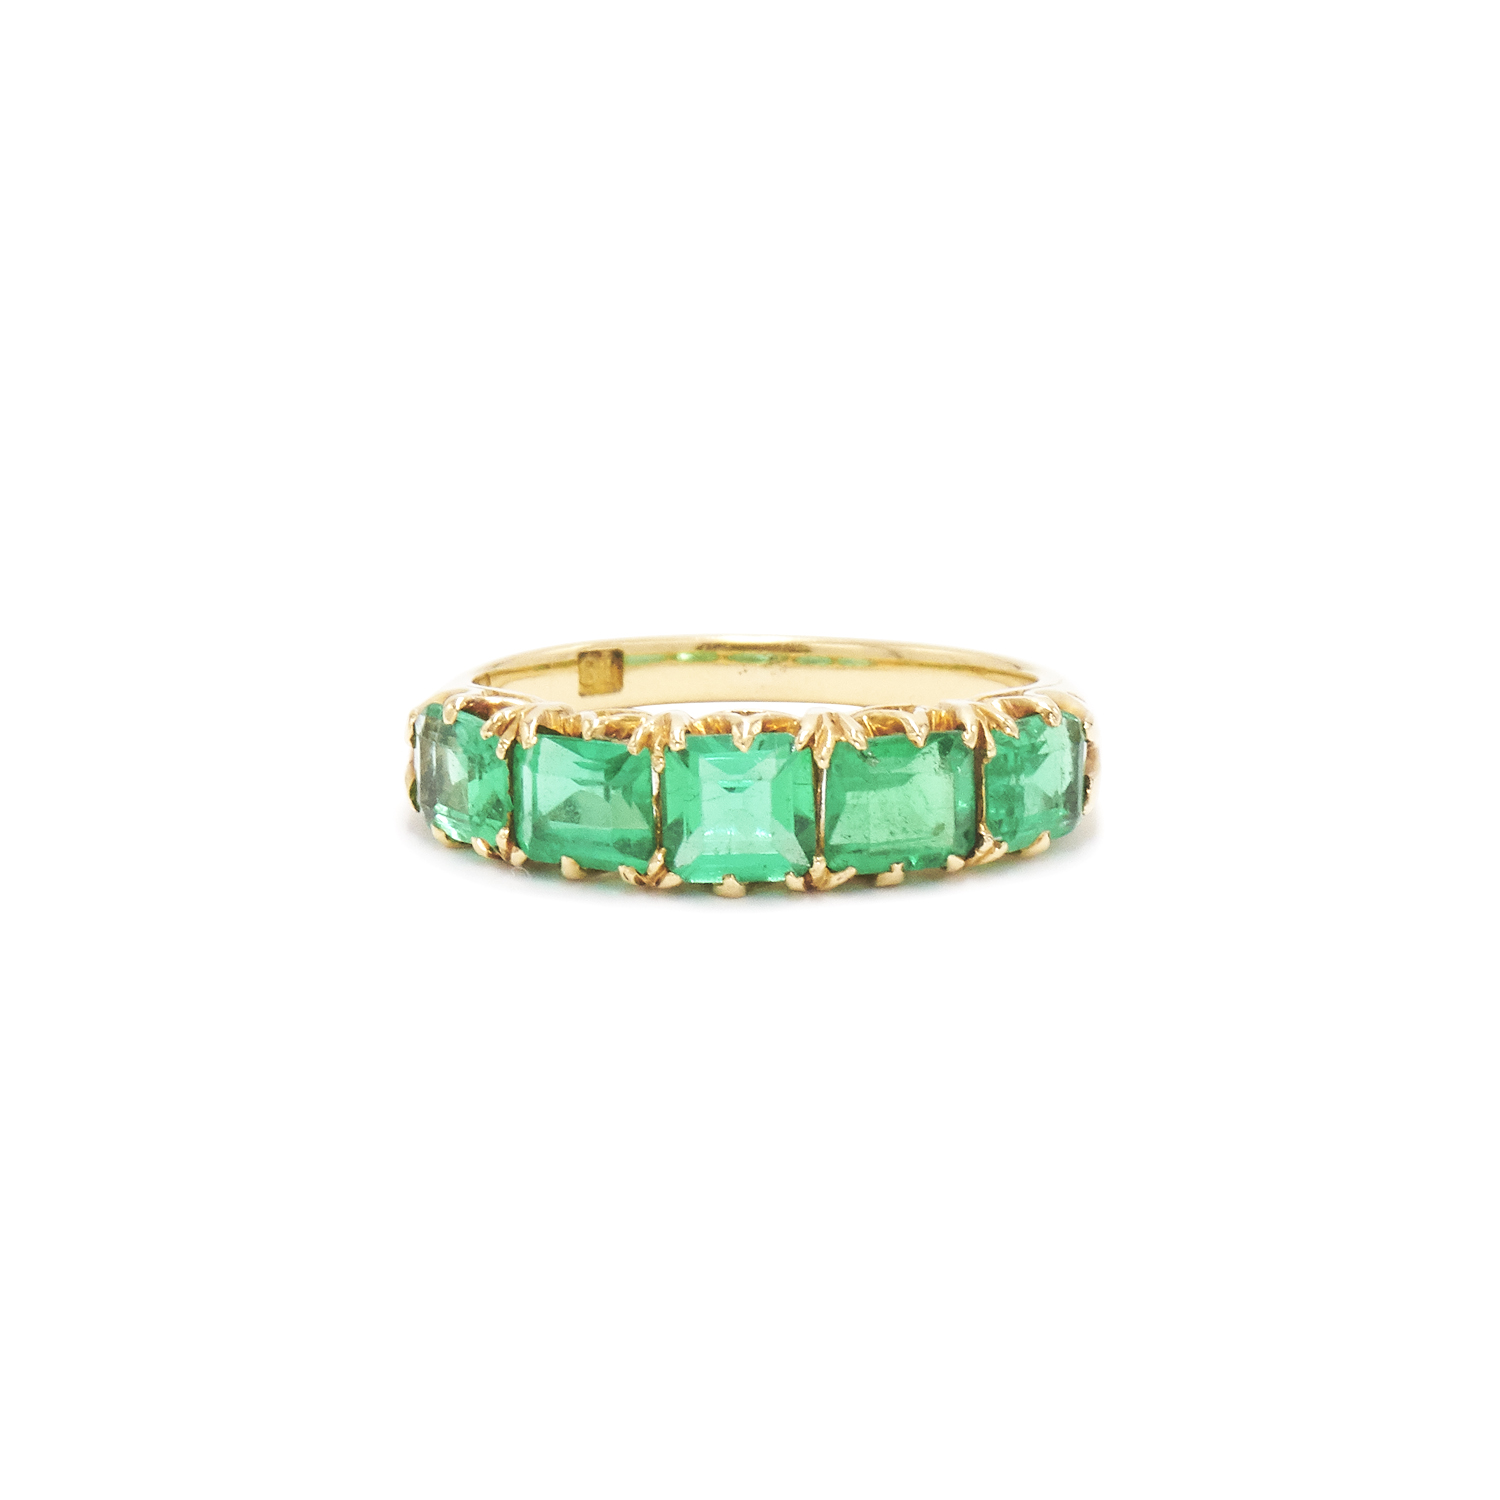 Antique 18K Yellow Gold Emerald 5 Stone Ring Style R-41585-FL-0-0